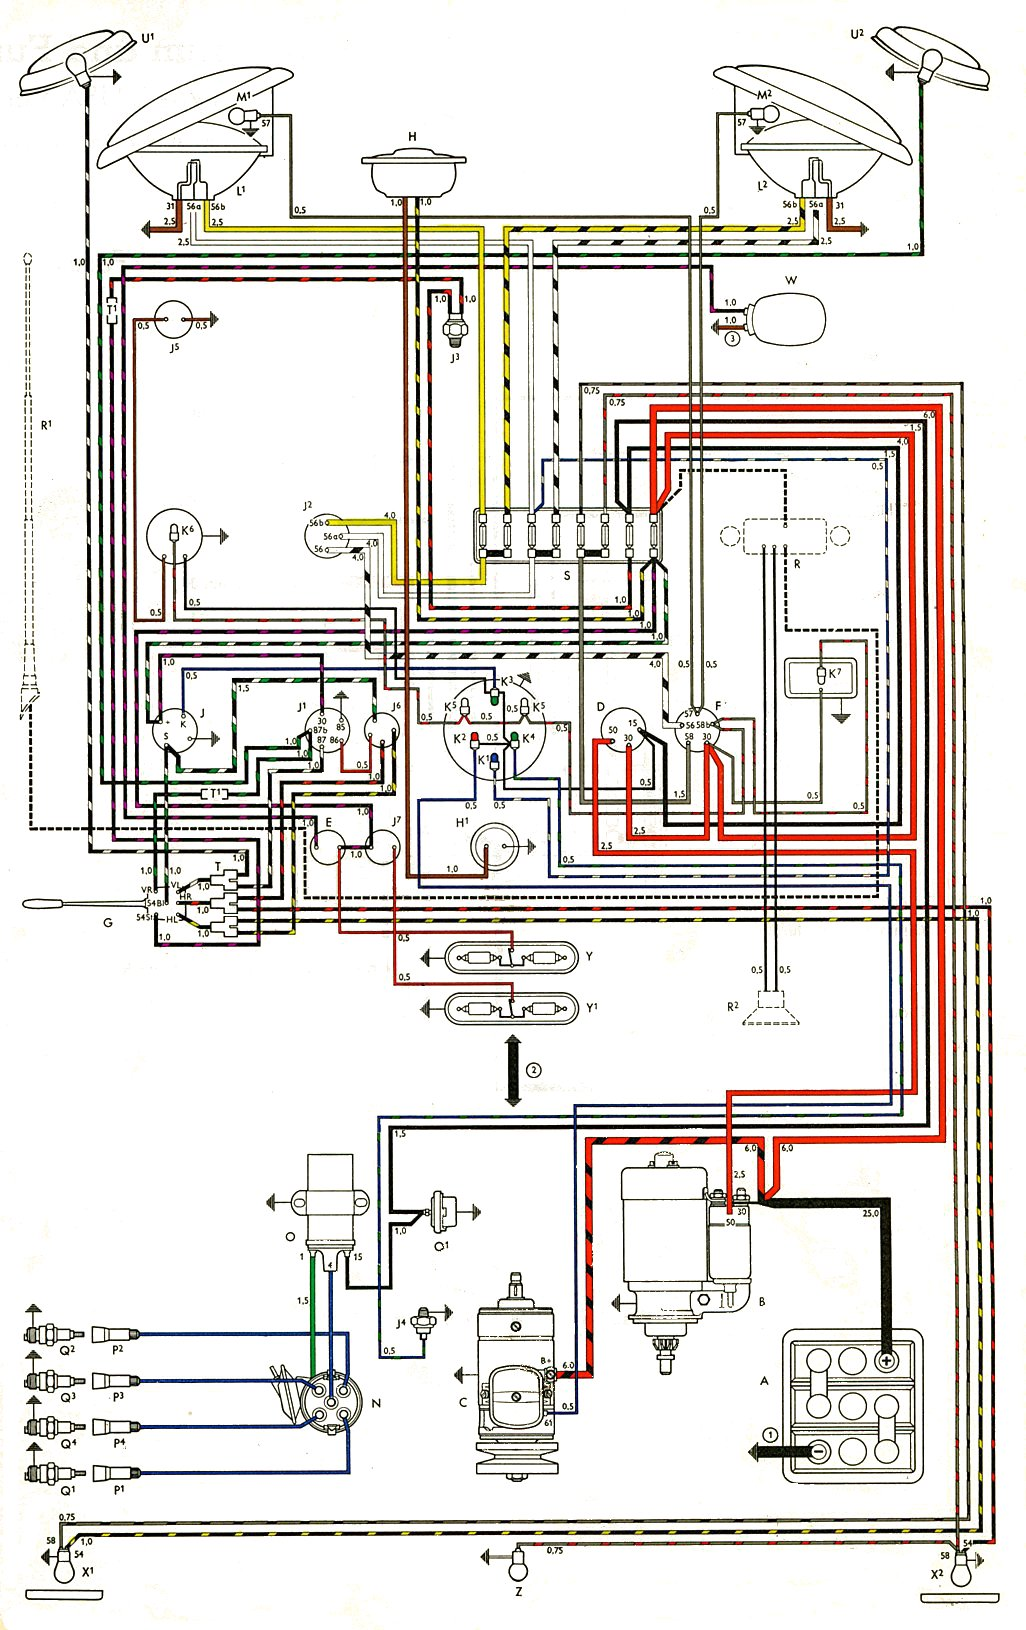 73 vw bus wiring diagrams 20 13 artatec automobile de \u2022thesamba com type 2 wiring diagrams rh thesamba com vw bus engine diagram 77 vw van wiring diagram